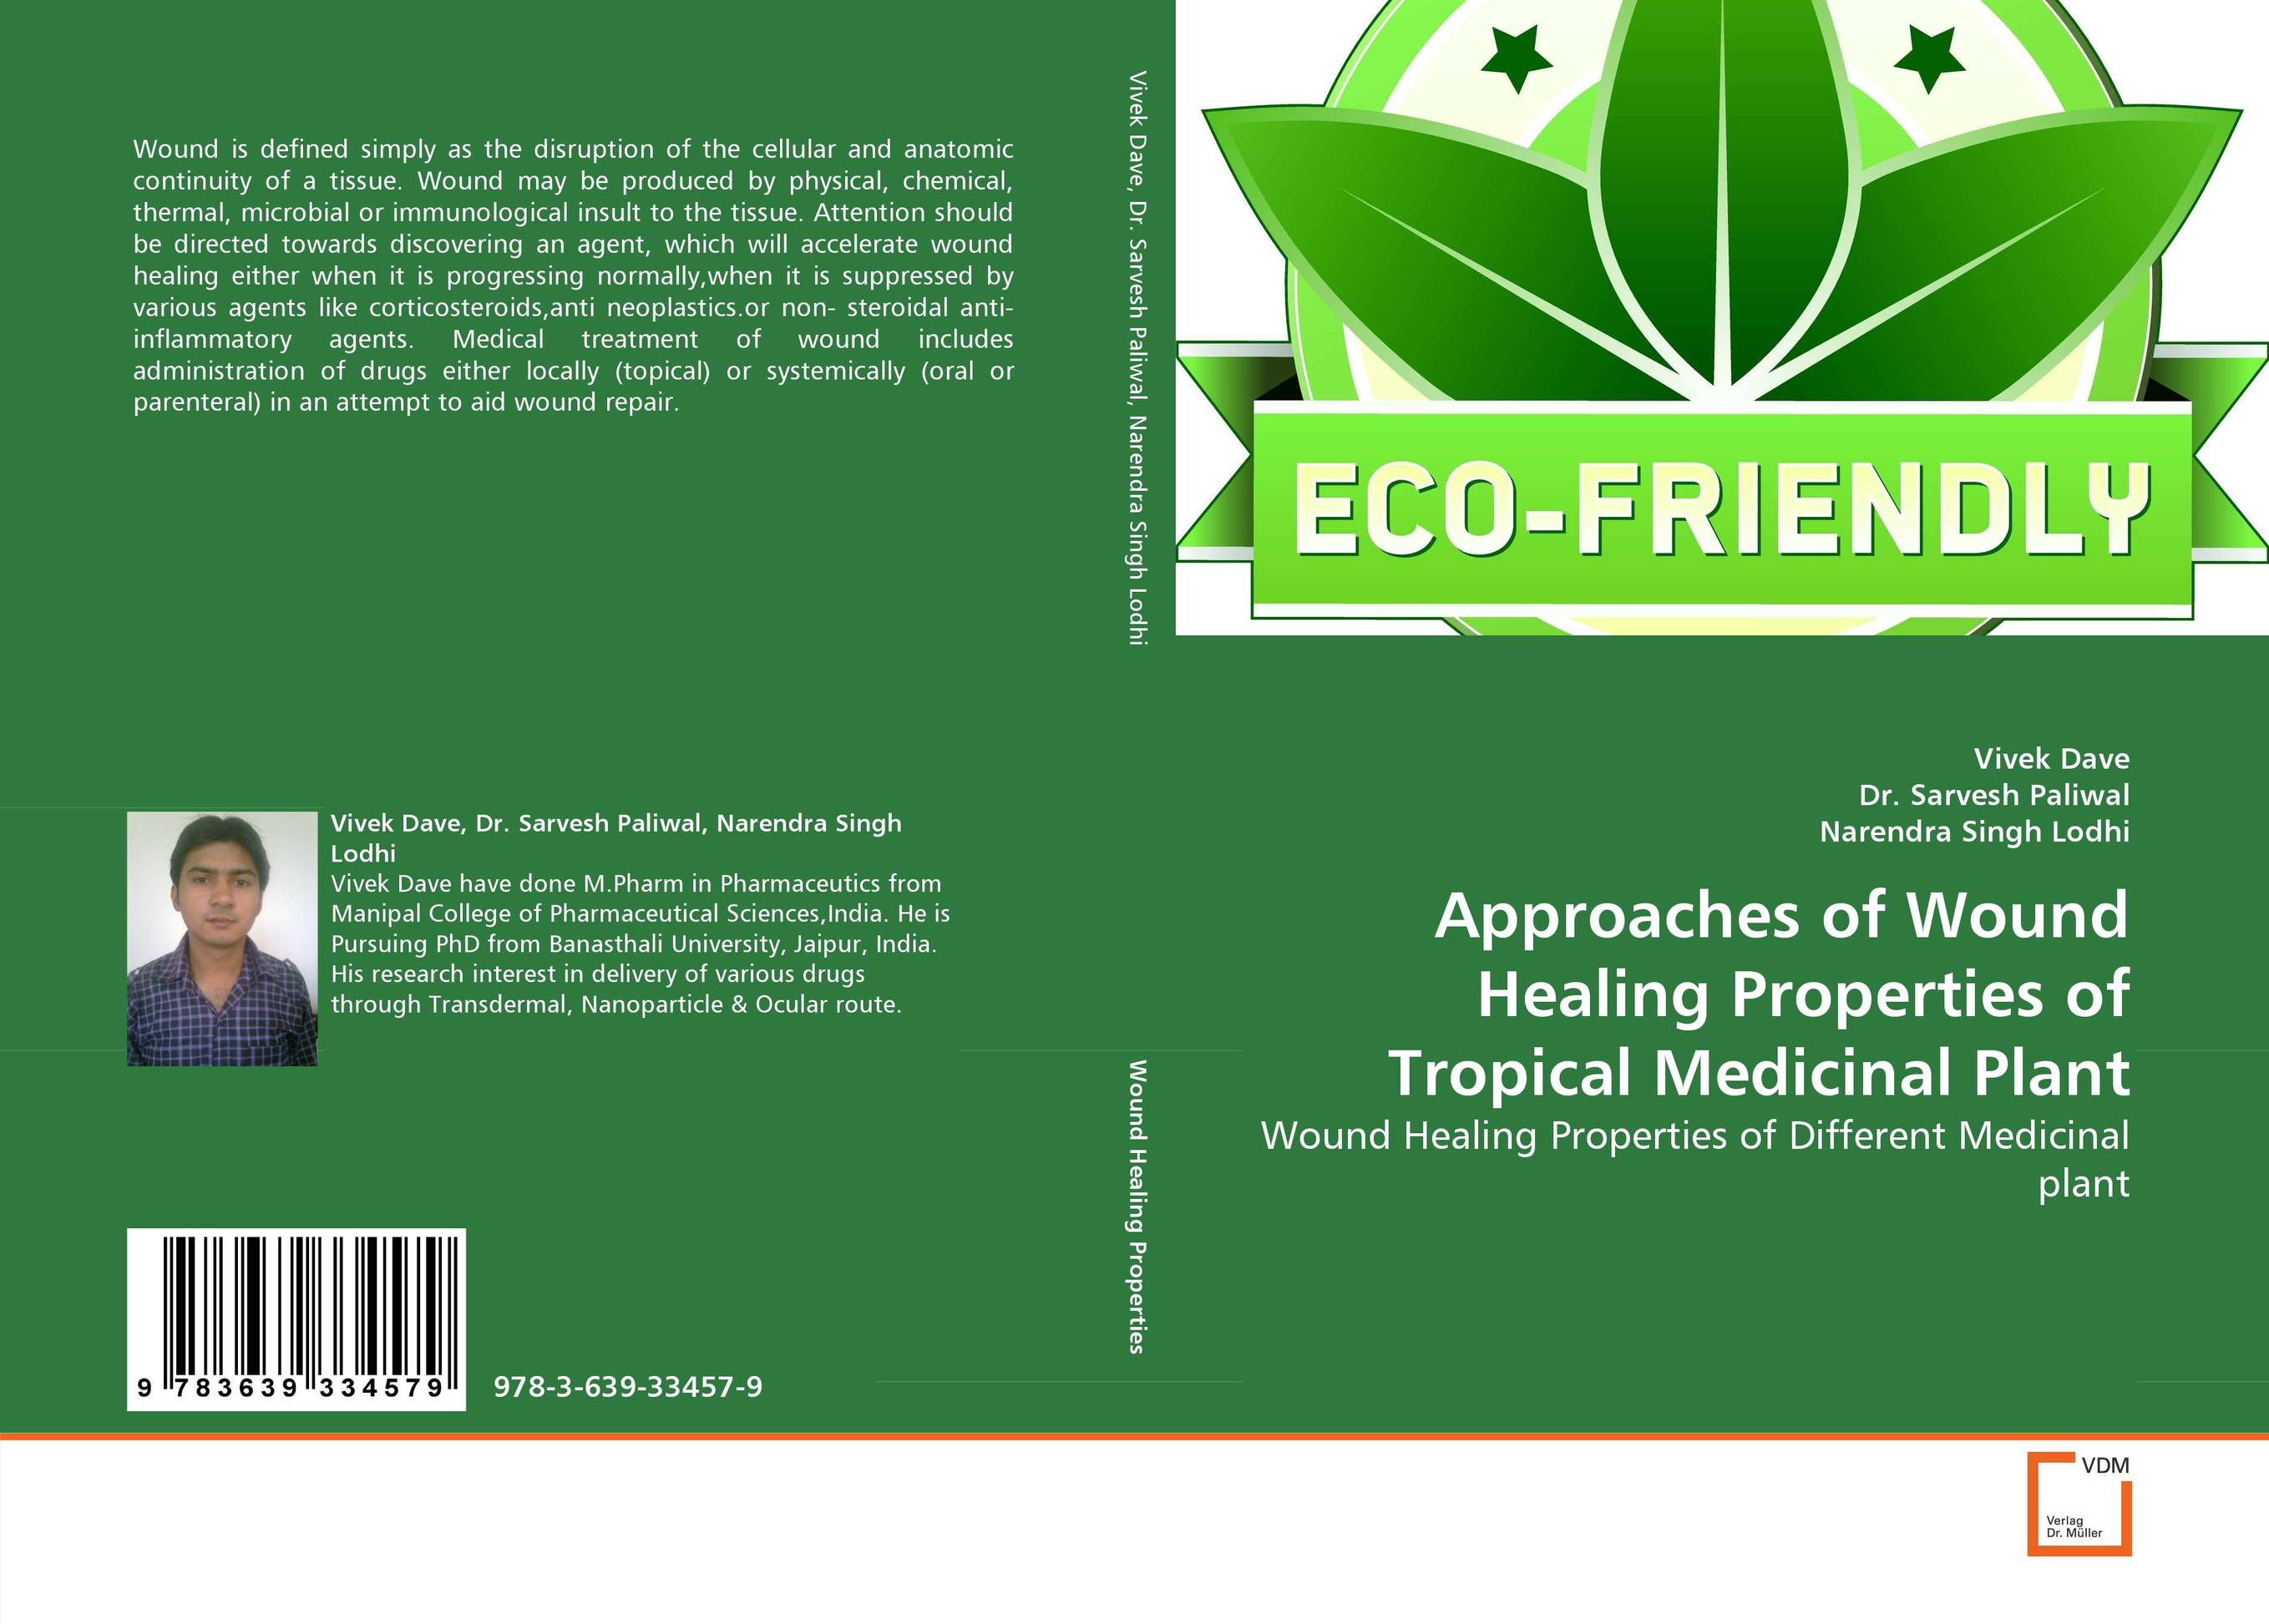 Approaches of Wound Healing Properties of Tropical Medicinal Plant exit wound